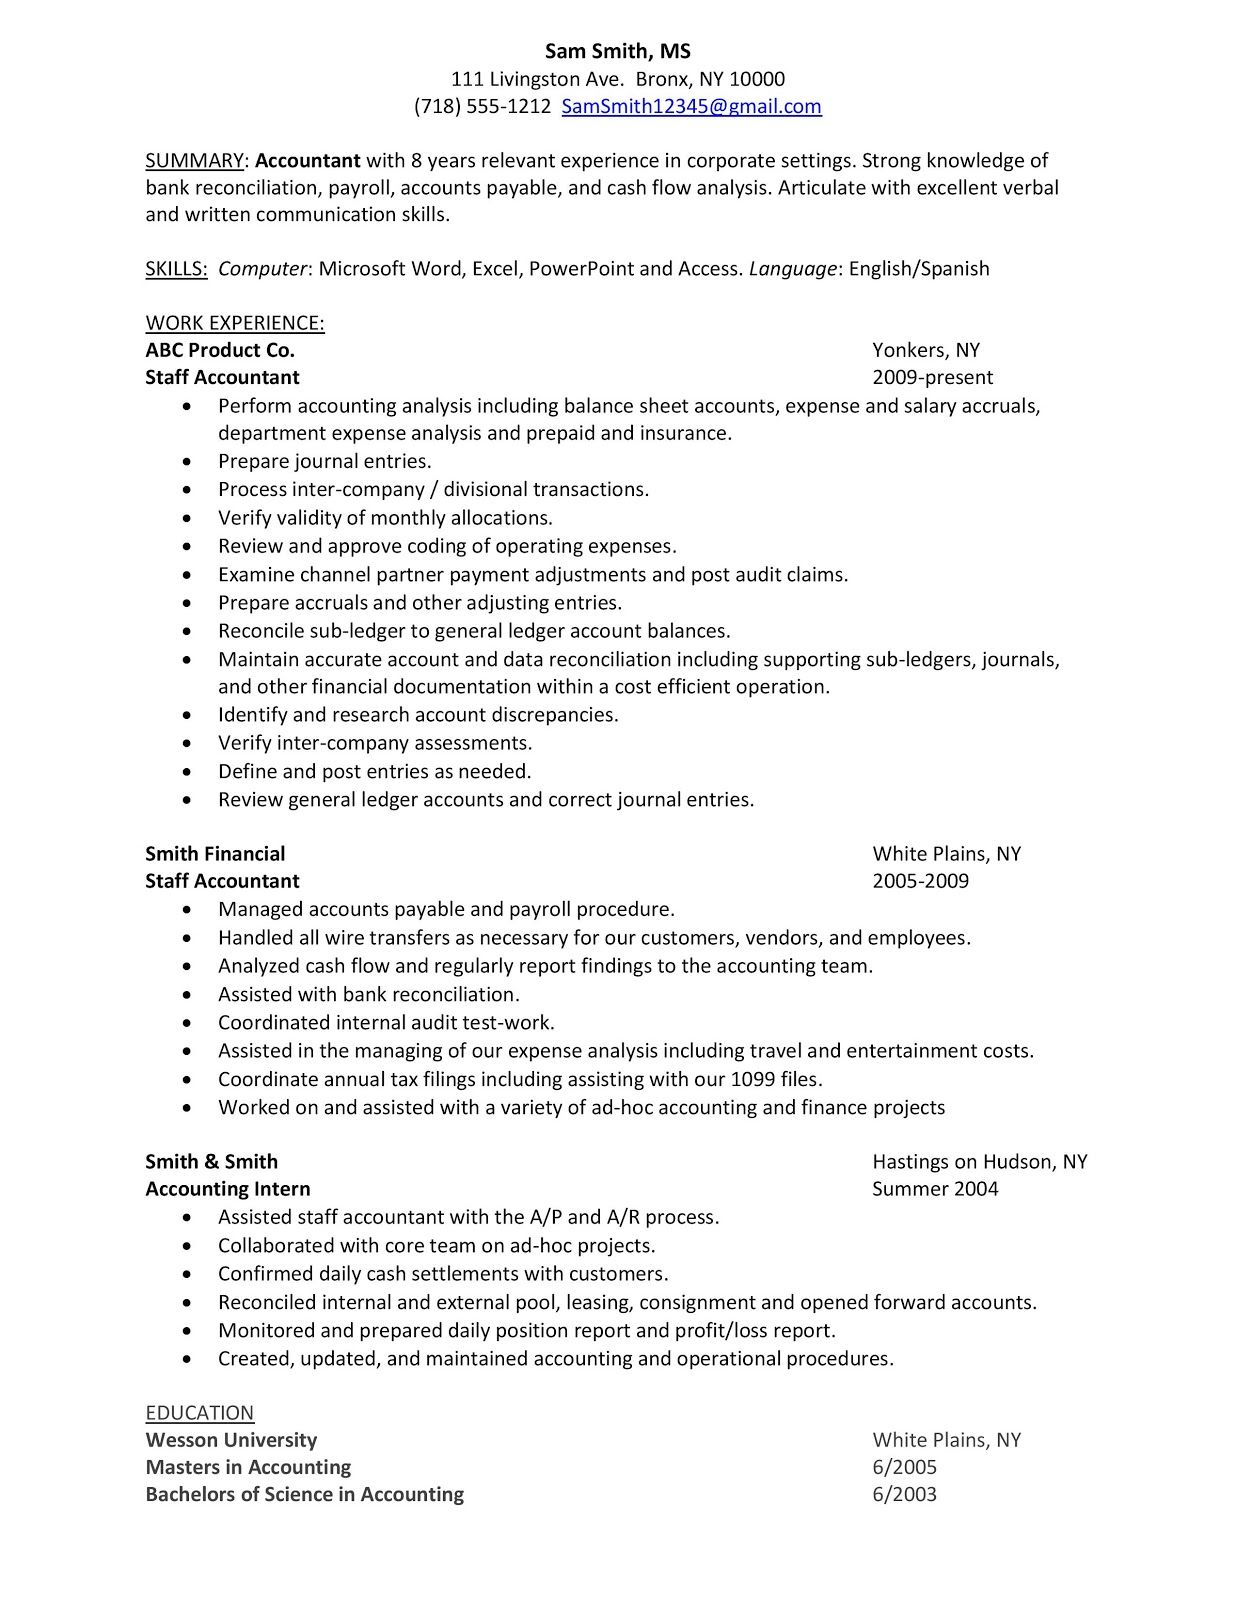 Resume For Accounting The Power For Career Success And Know Someone What Now Staff